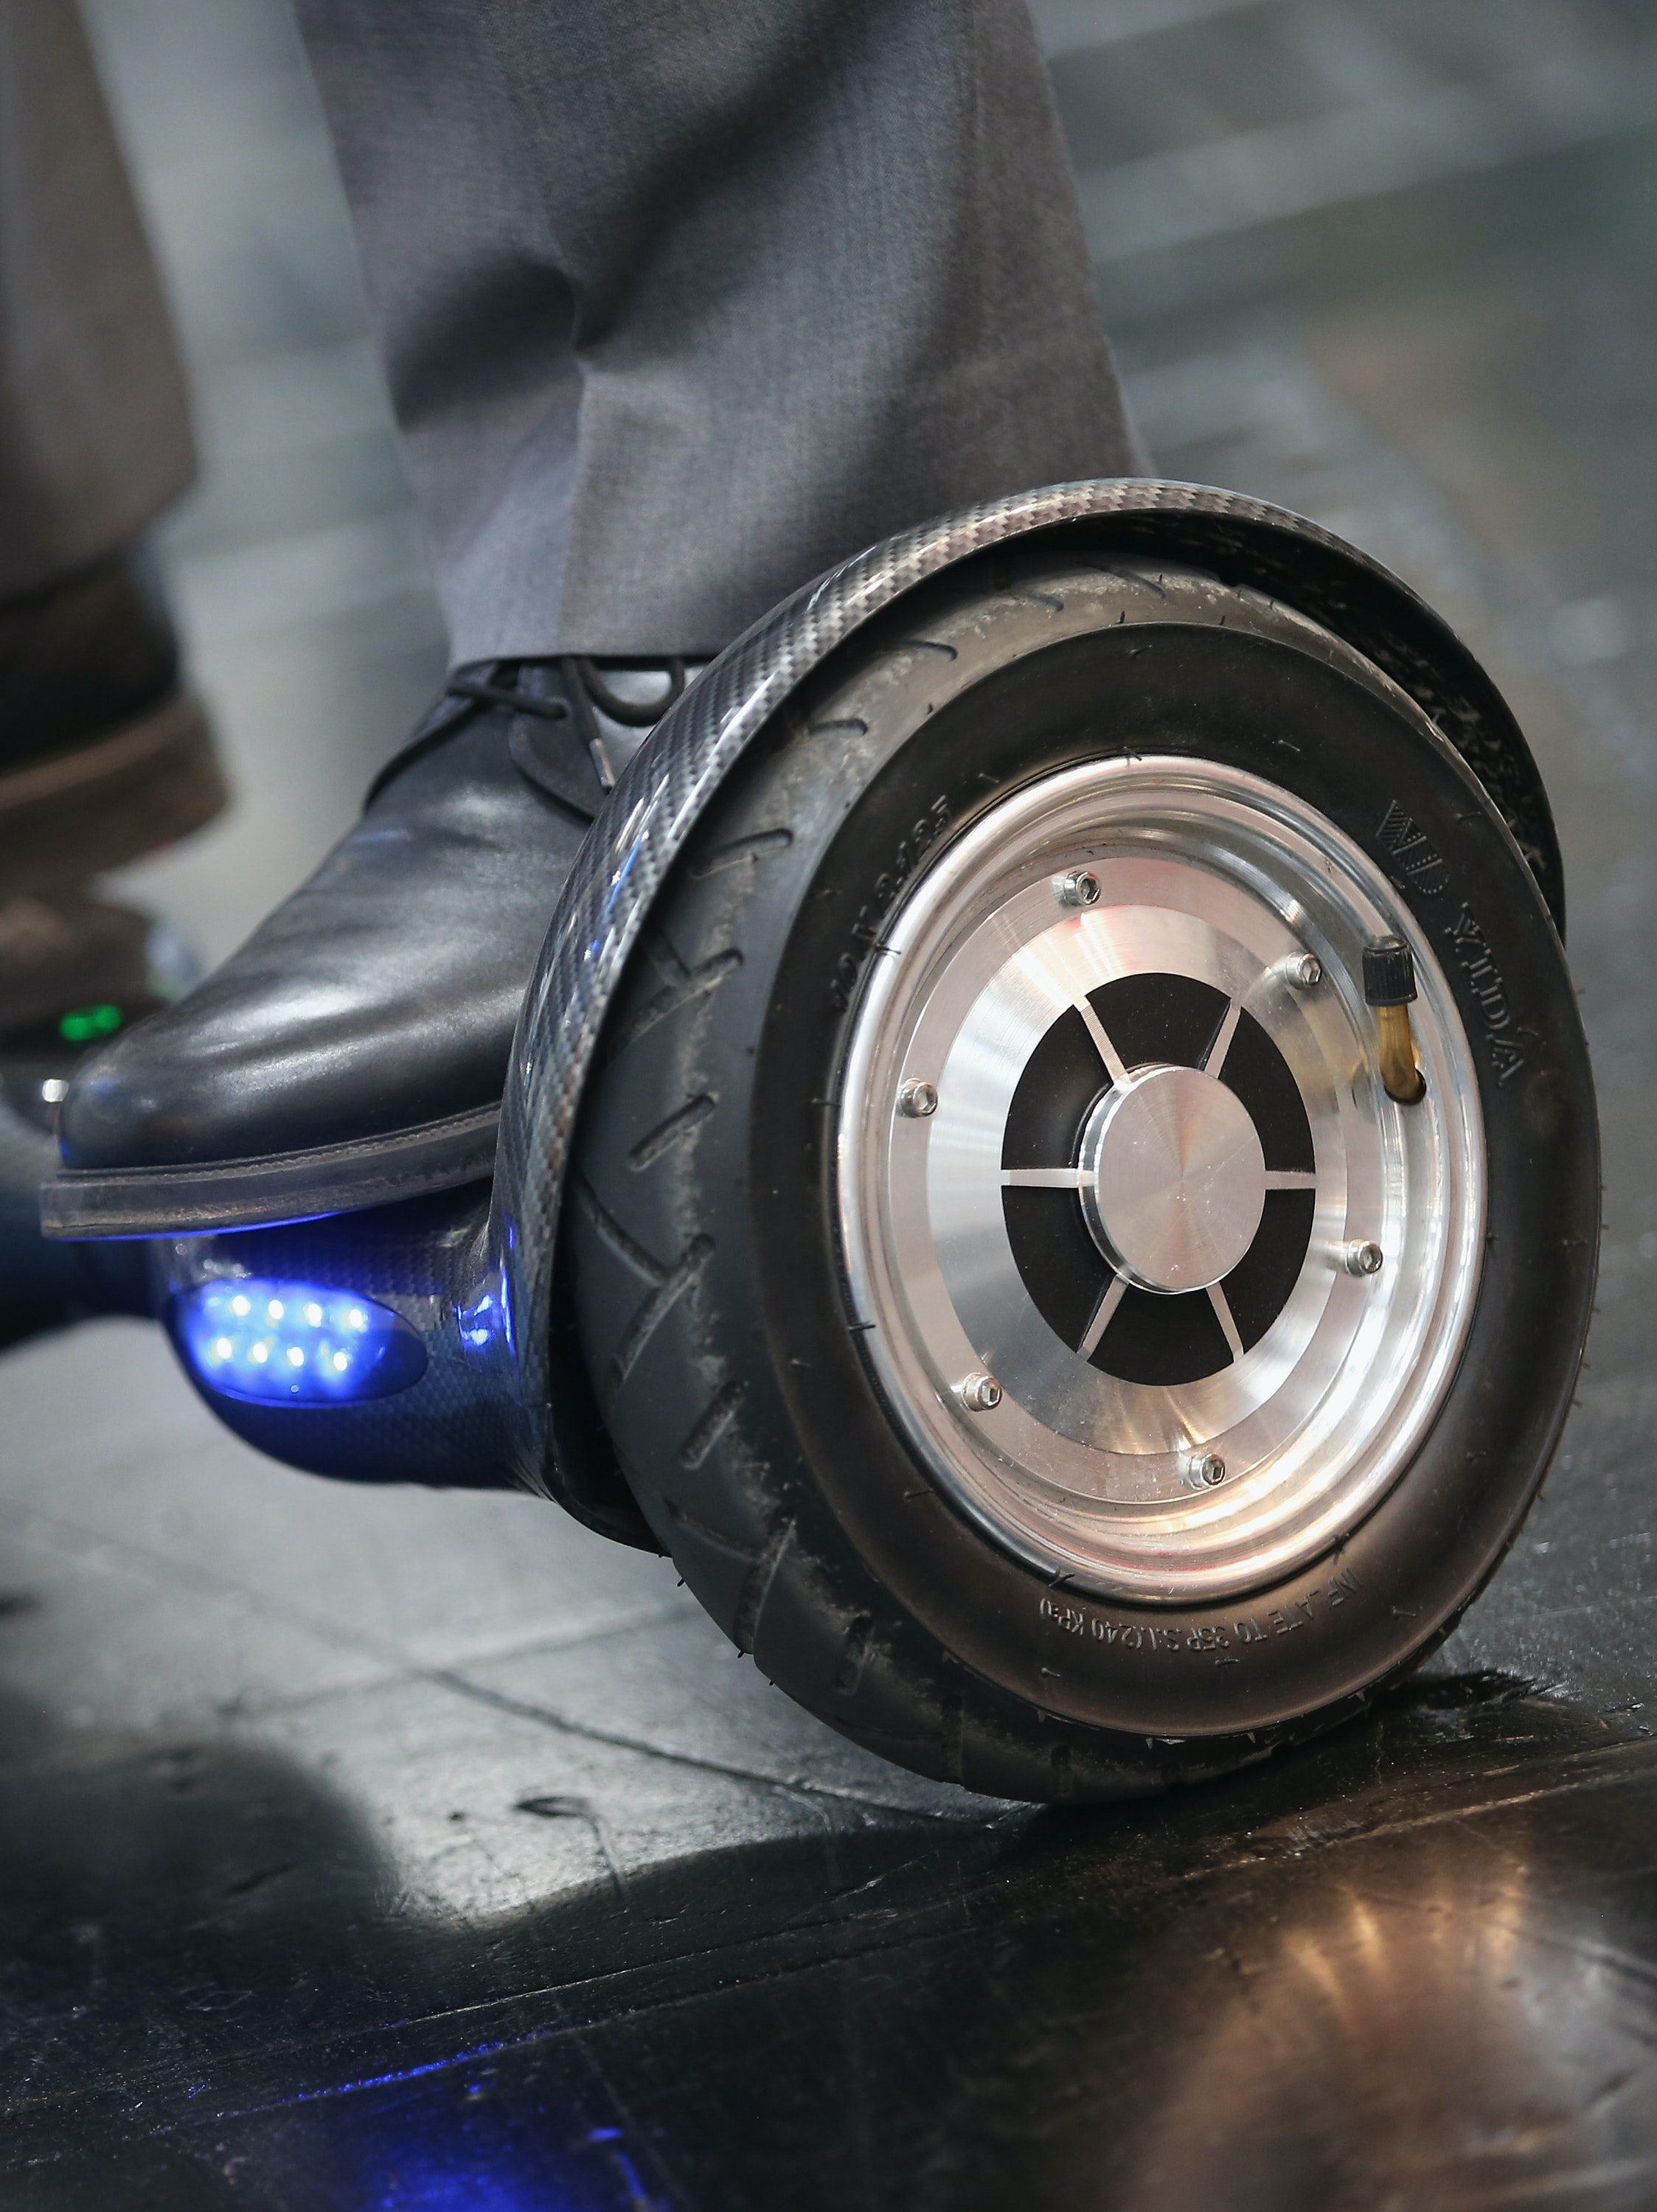 HANOVER, GERMANY - MARCH 14:  A host rides a BykeBoard hoverboard at the 2016 CeBIT digital technology trade fair on the fair's opening day on March 14, 2016 in Hanover, Germany. The 2016 CeBIT will run from March 14-18.  (Photo by Sean Gallup/Getty Images)